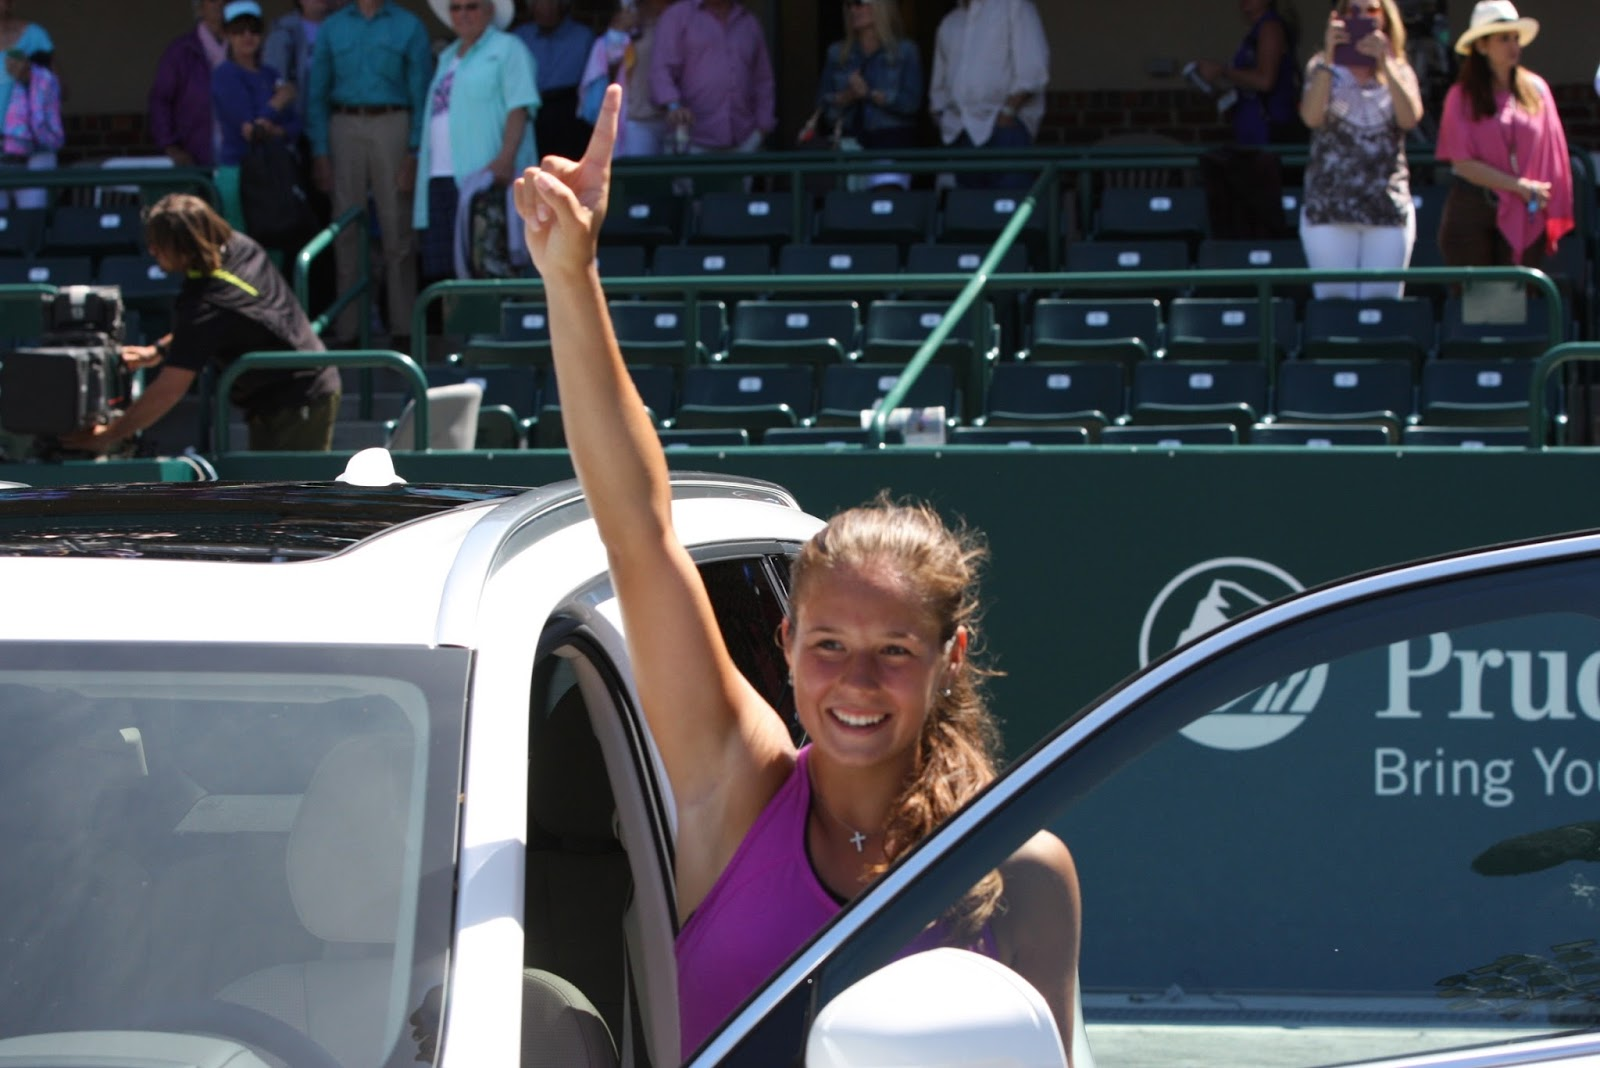 Women Who Serve Playing With The Brain Kasatkina Wins Volvo Car Open